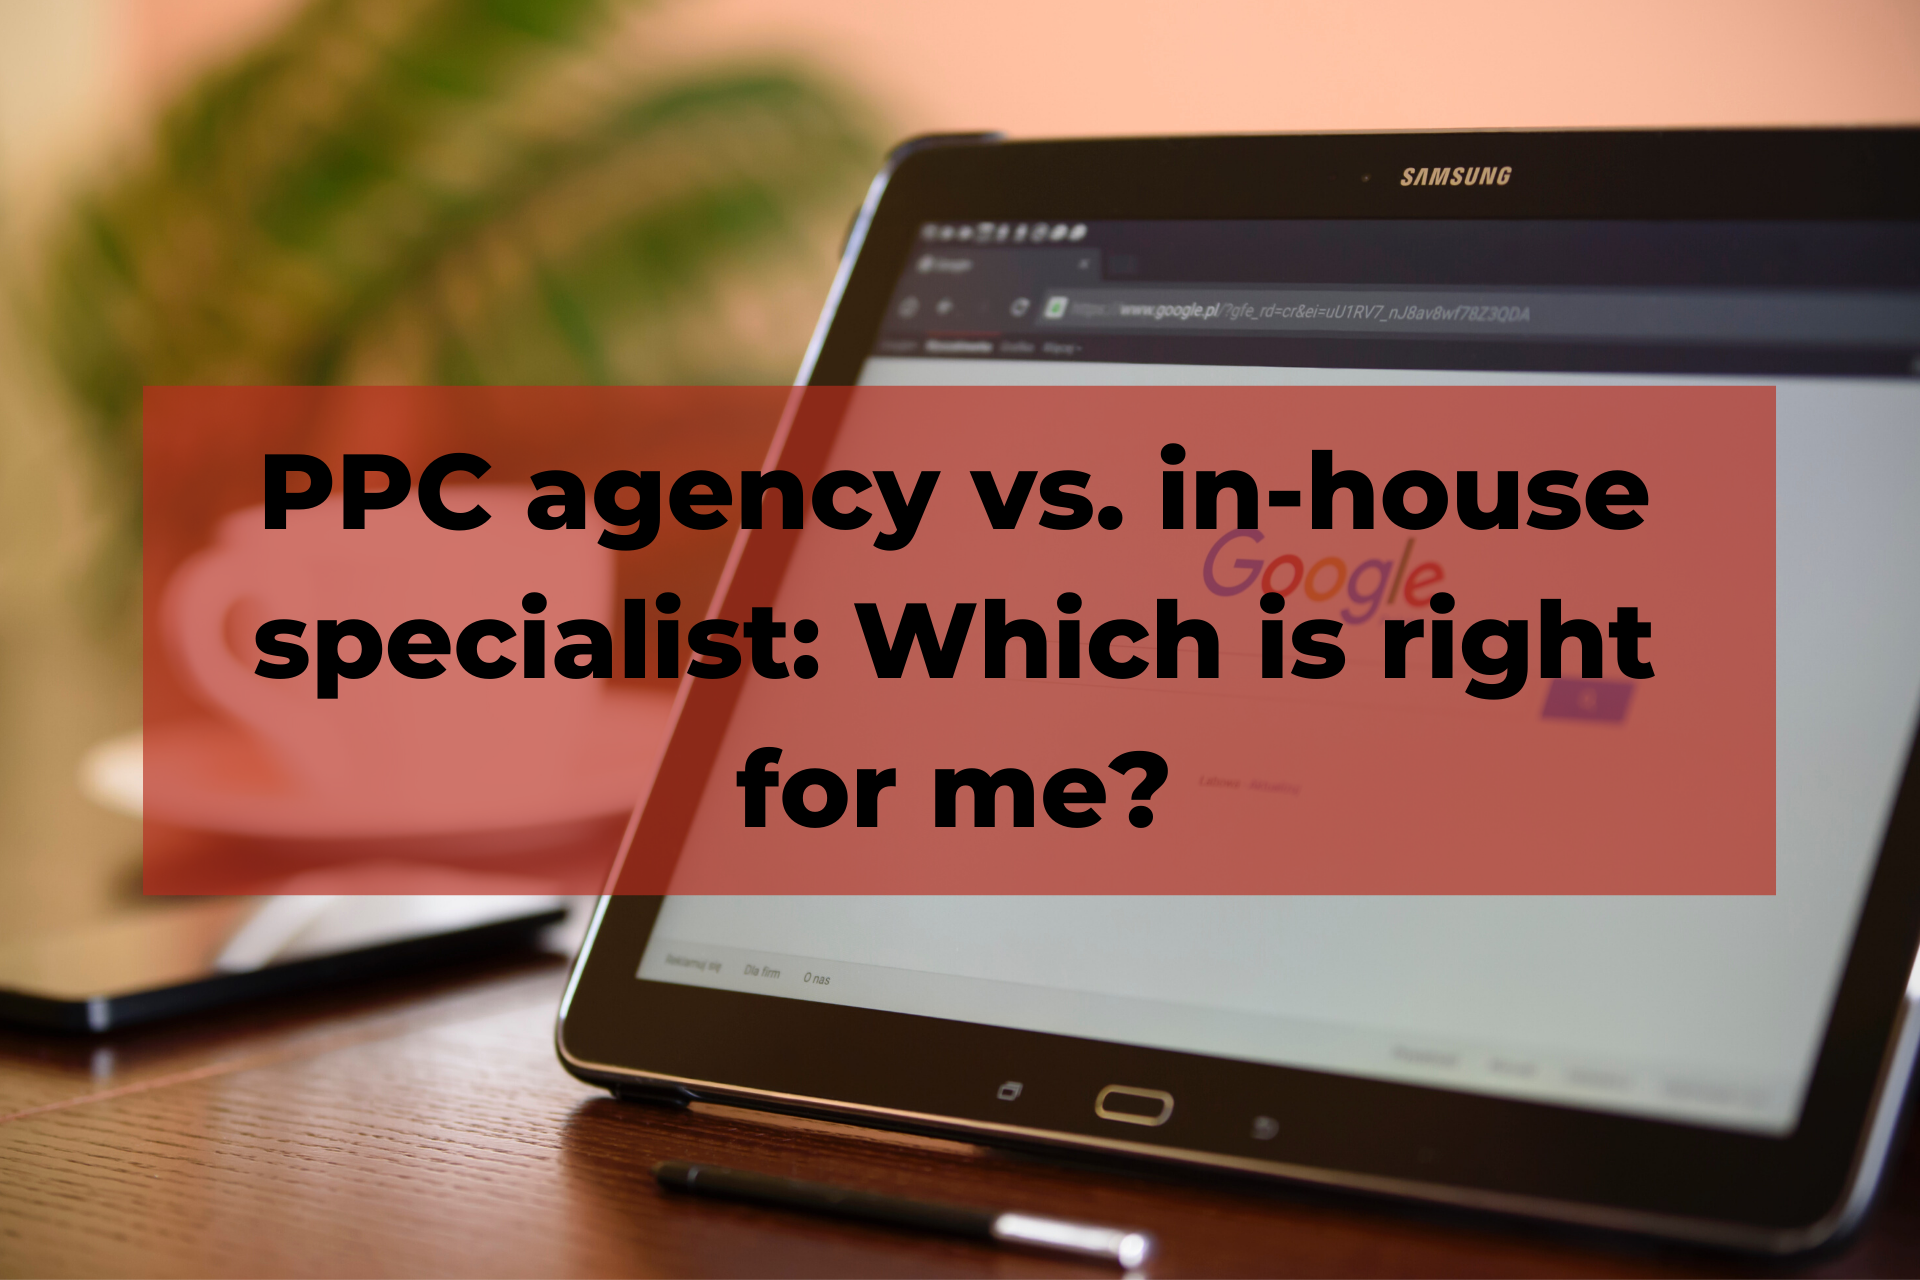 PPC agency vs. in-house specialist: Which is right for me?